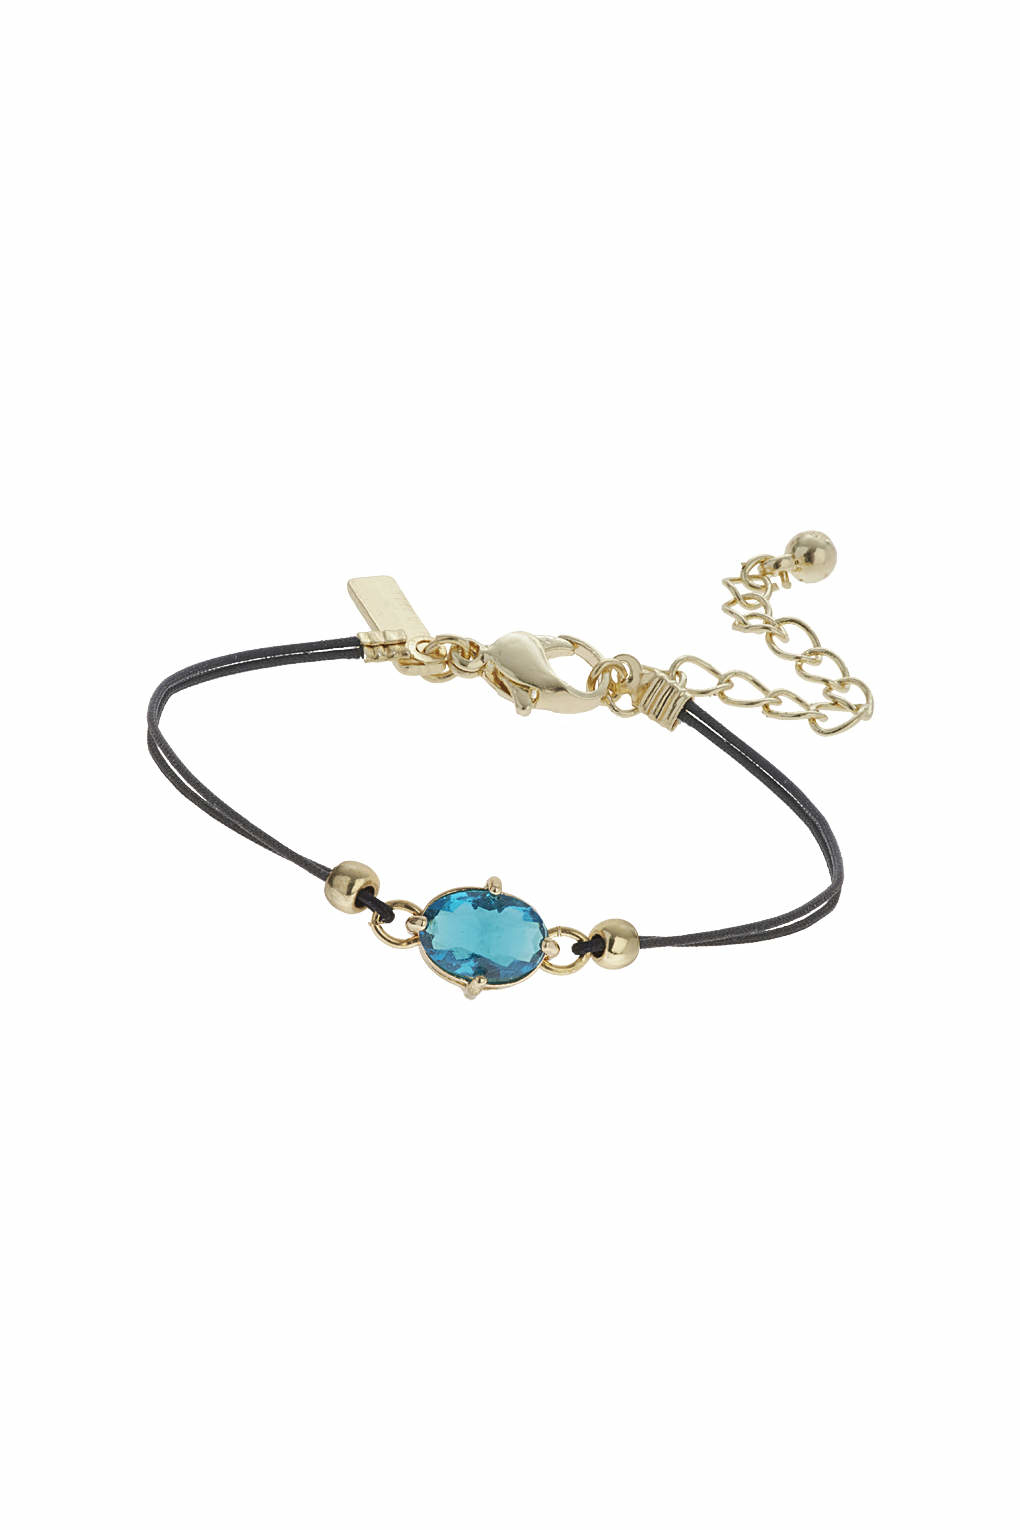 bali jewellery birthstone auree bracelet december dec turquoise